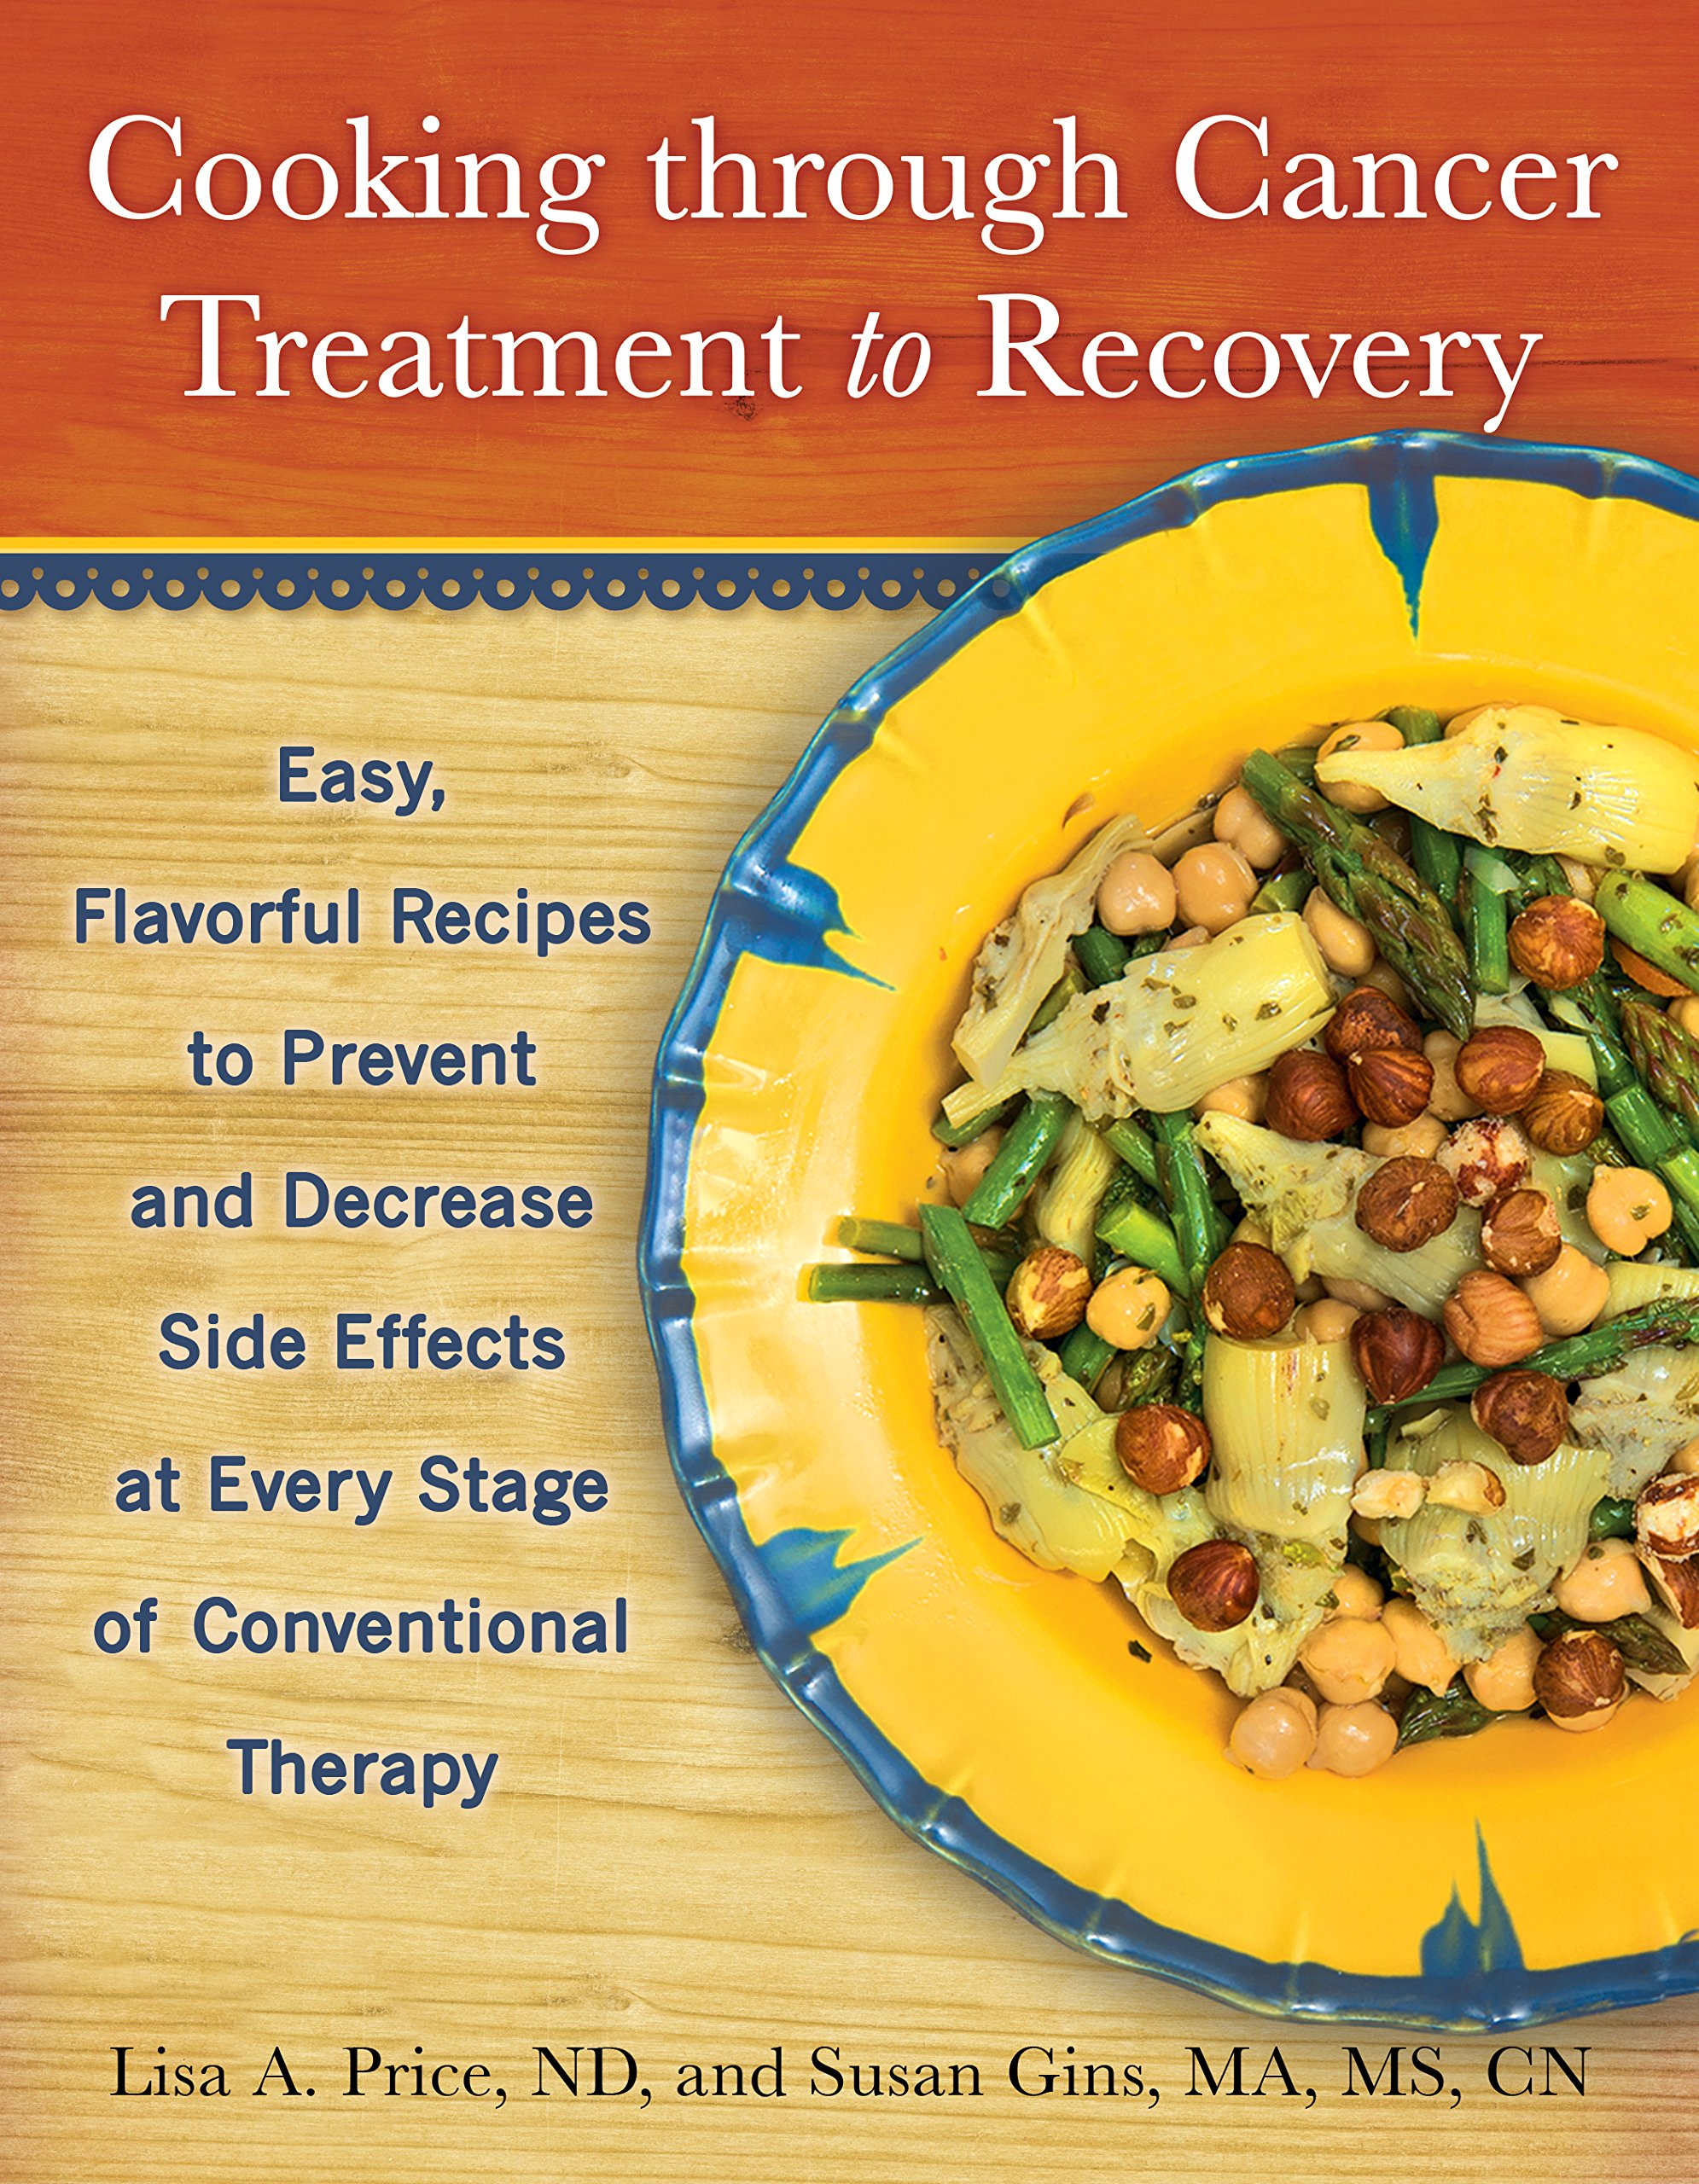 Cooking through cancer treatment to recovery easy flavorful cooking through cancer treatment to recovery easy flavorful recipes to prevent and decrease side effects at every stage of conventional therapy lisa a forumfinder Choice Image